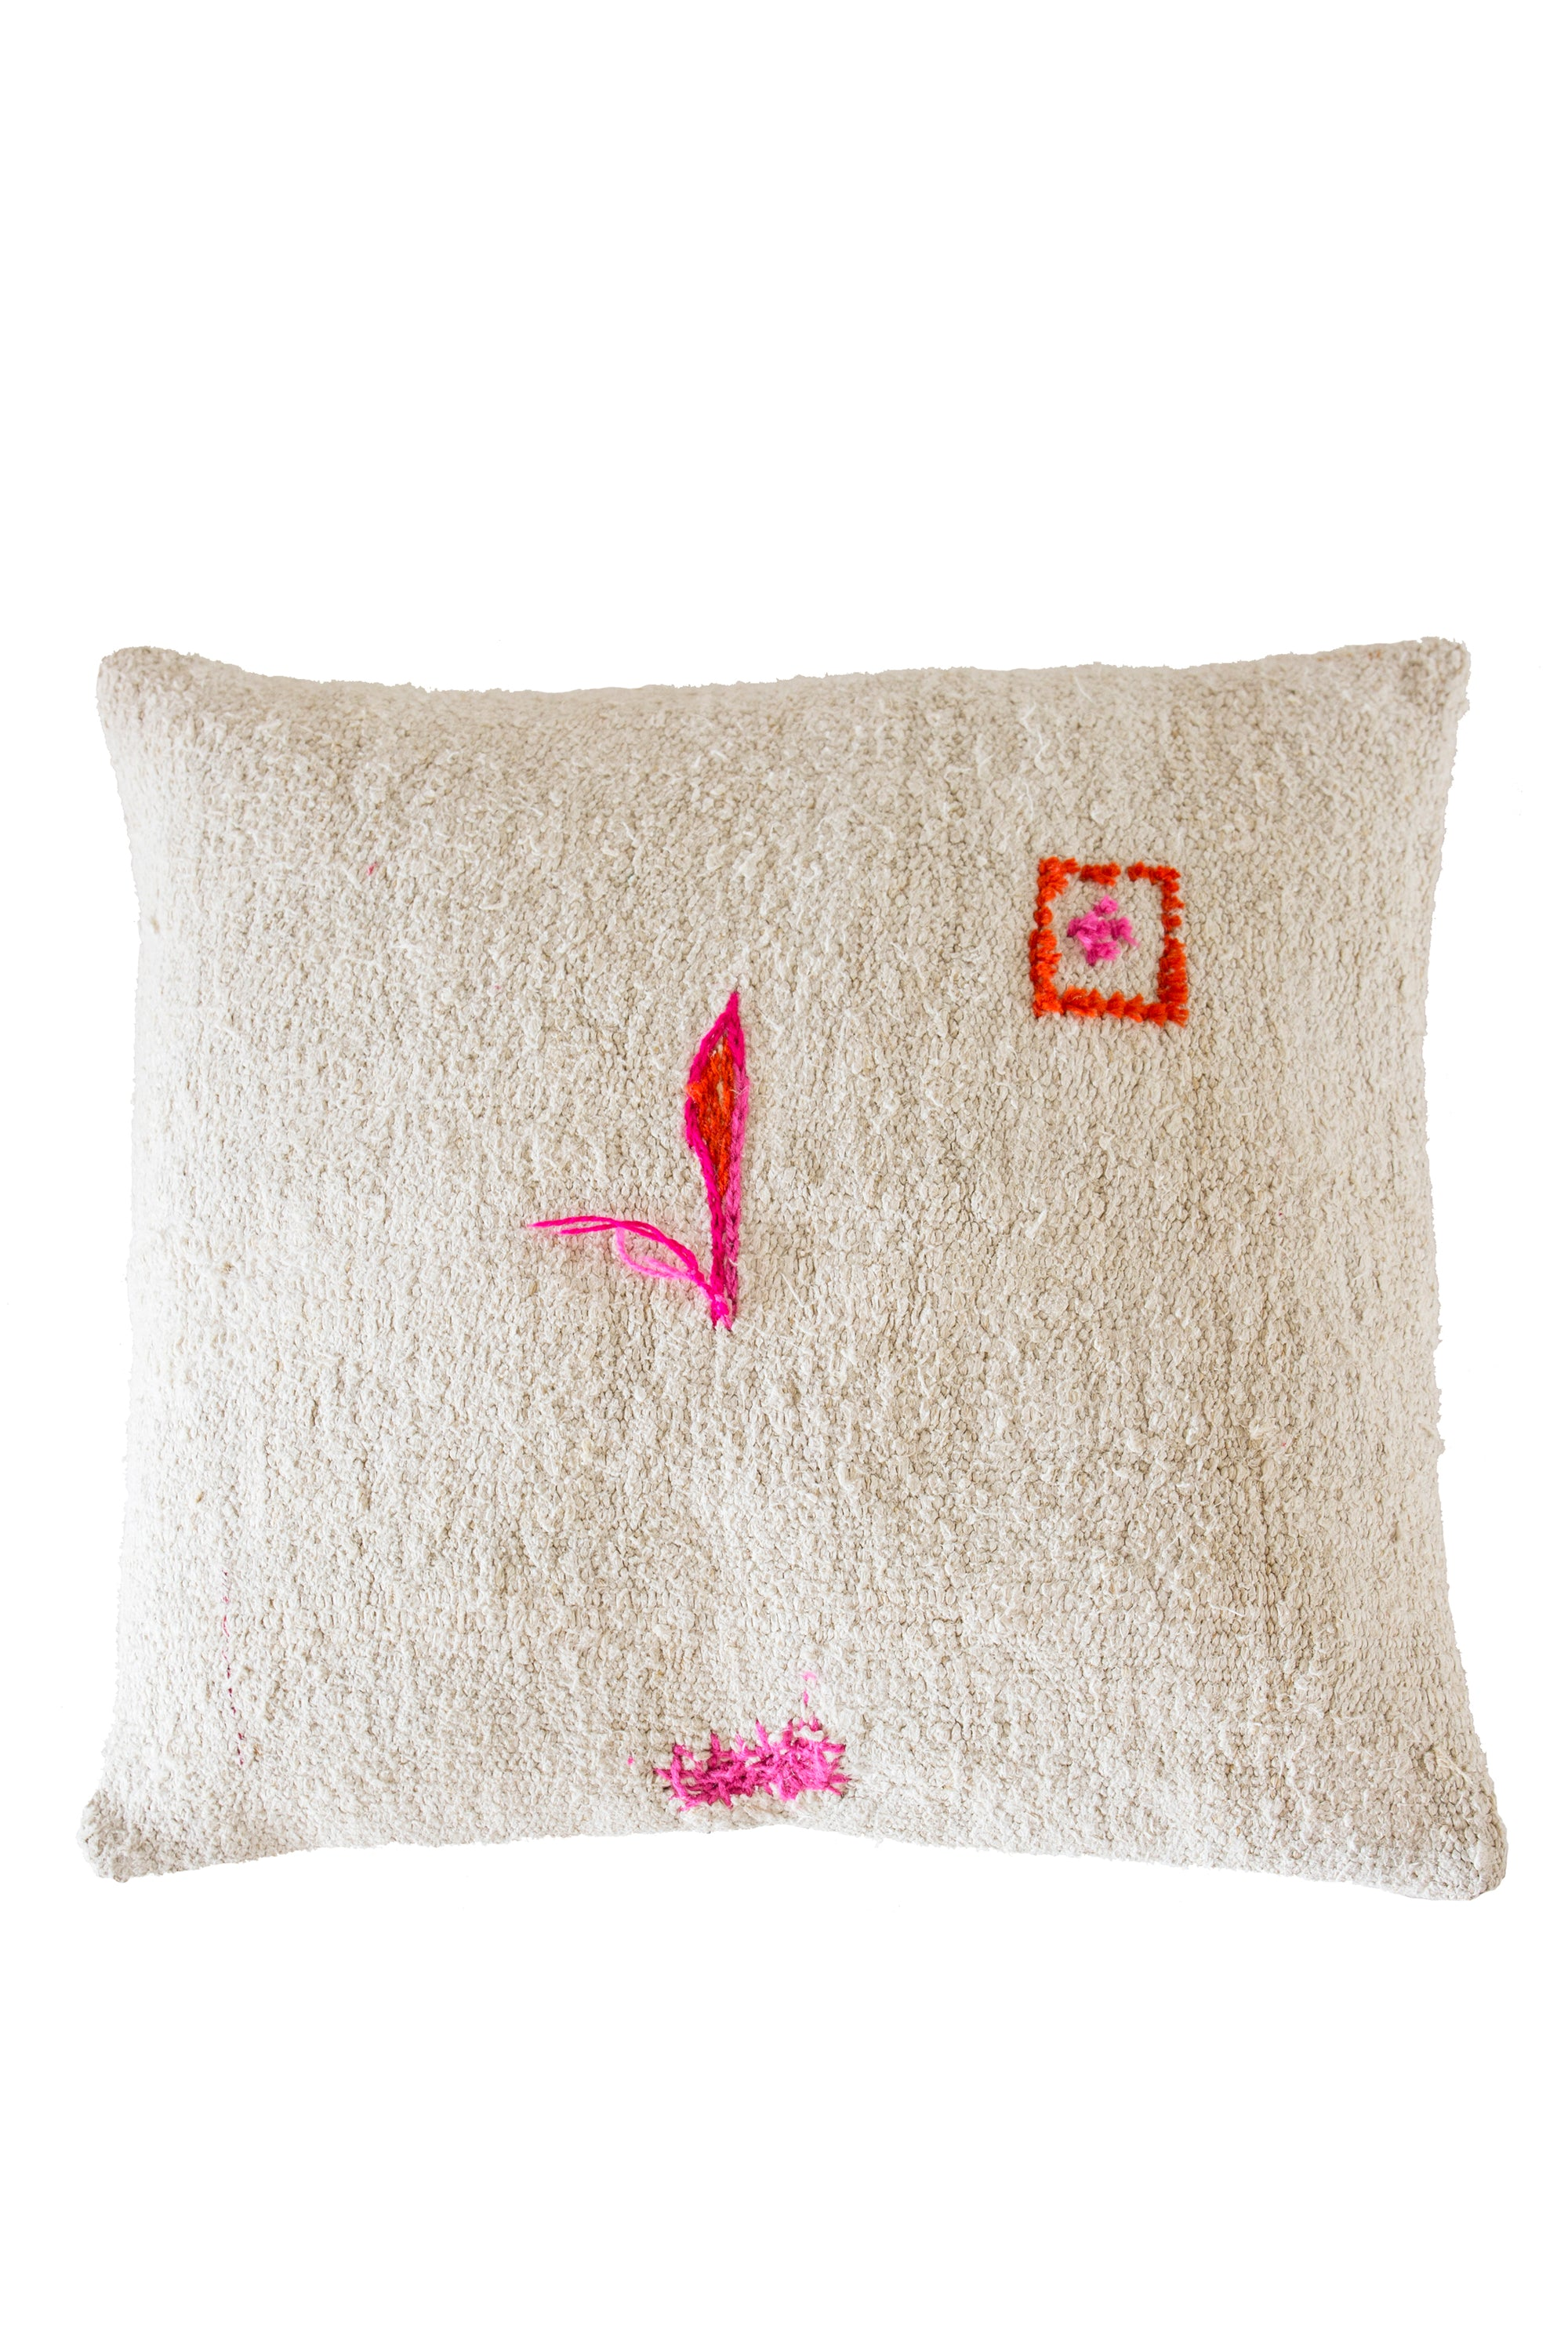 Ubu Turkish Kilim Cushion